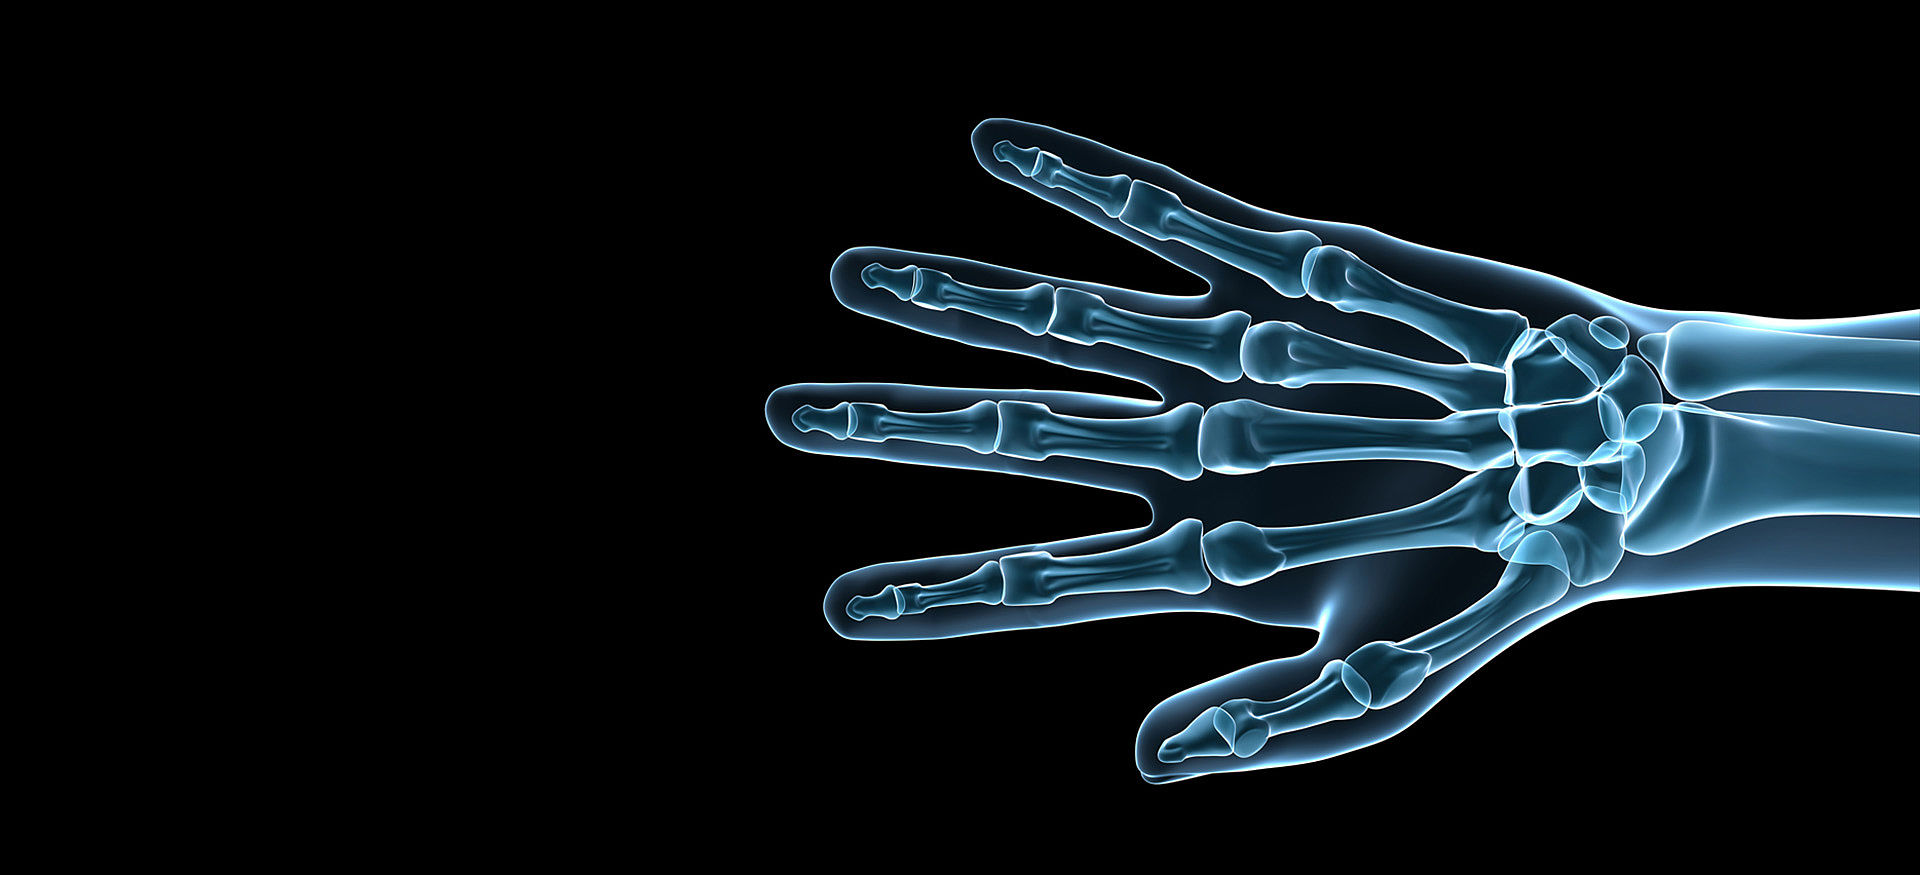 Implants and Implant Systems Hand surgery